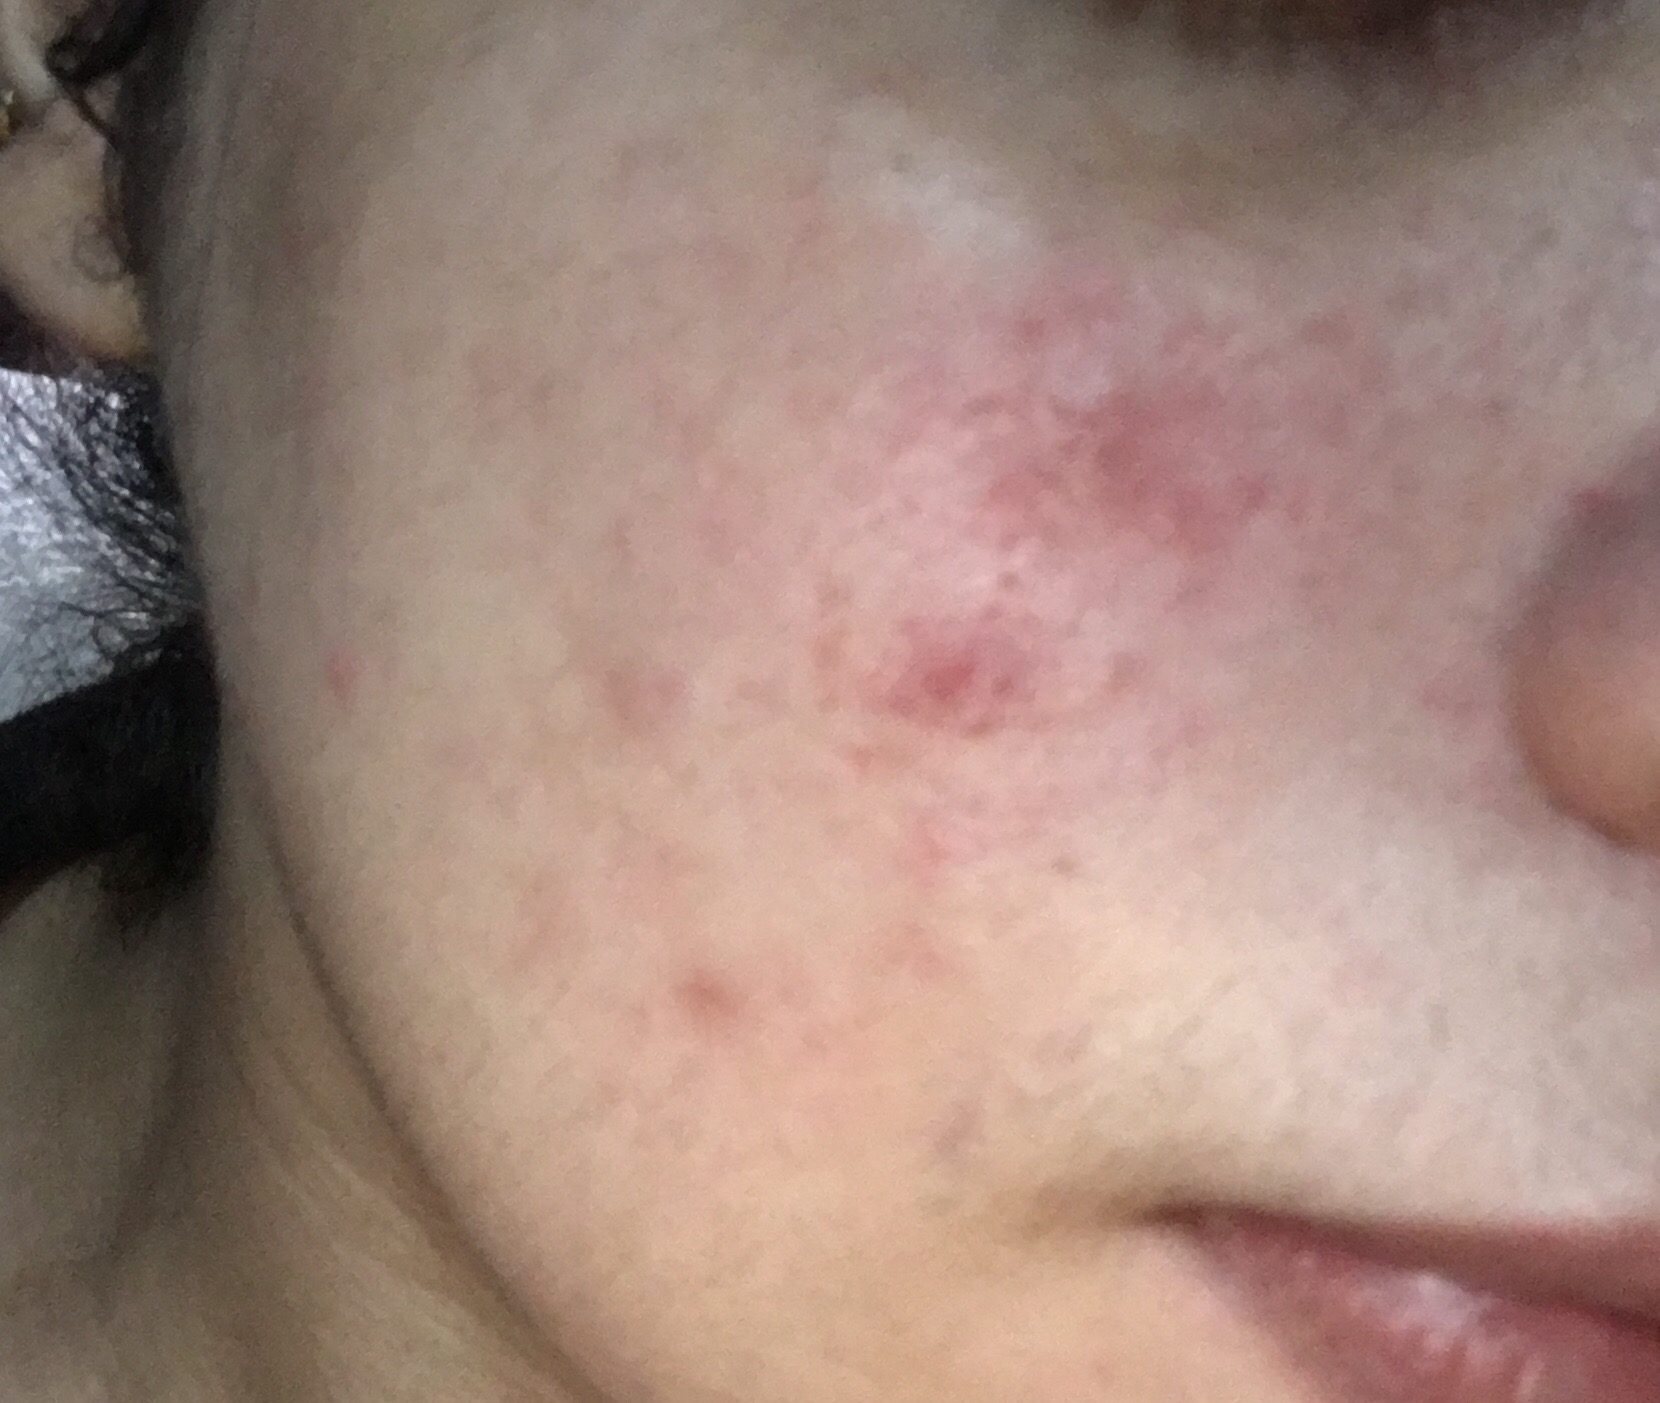 Acne And Redness Last Year I Got The Trea Ask A Doctor Online